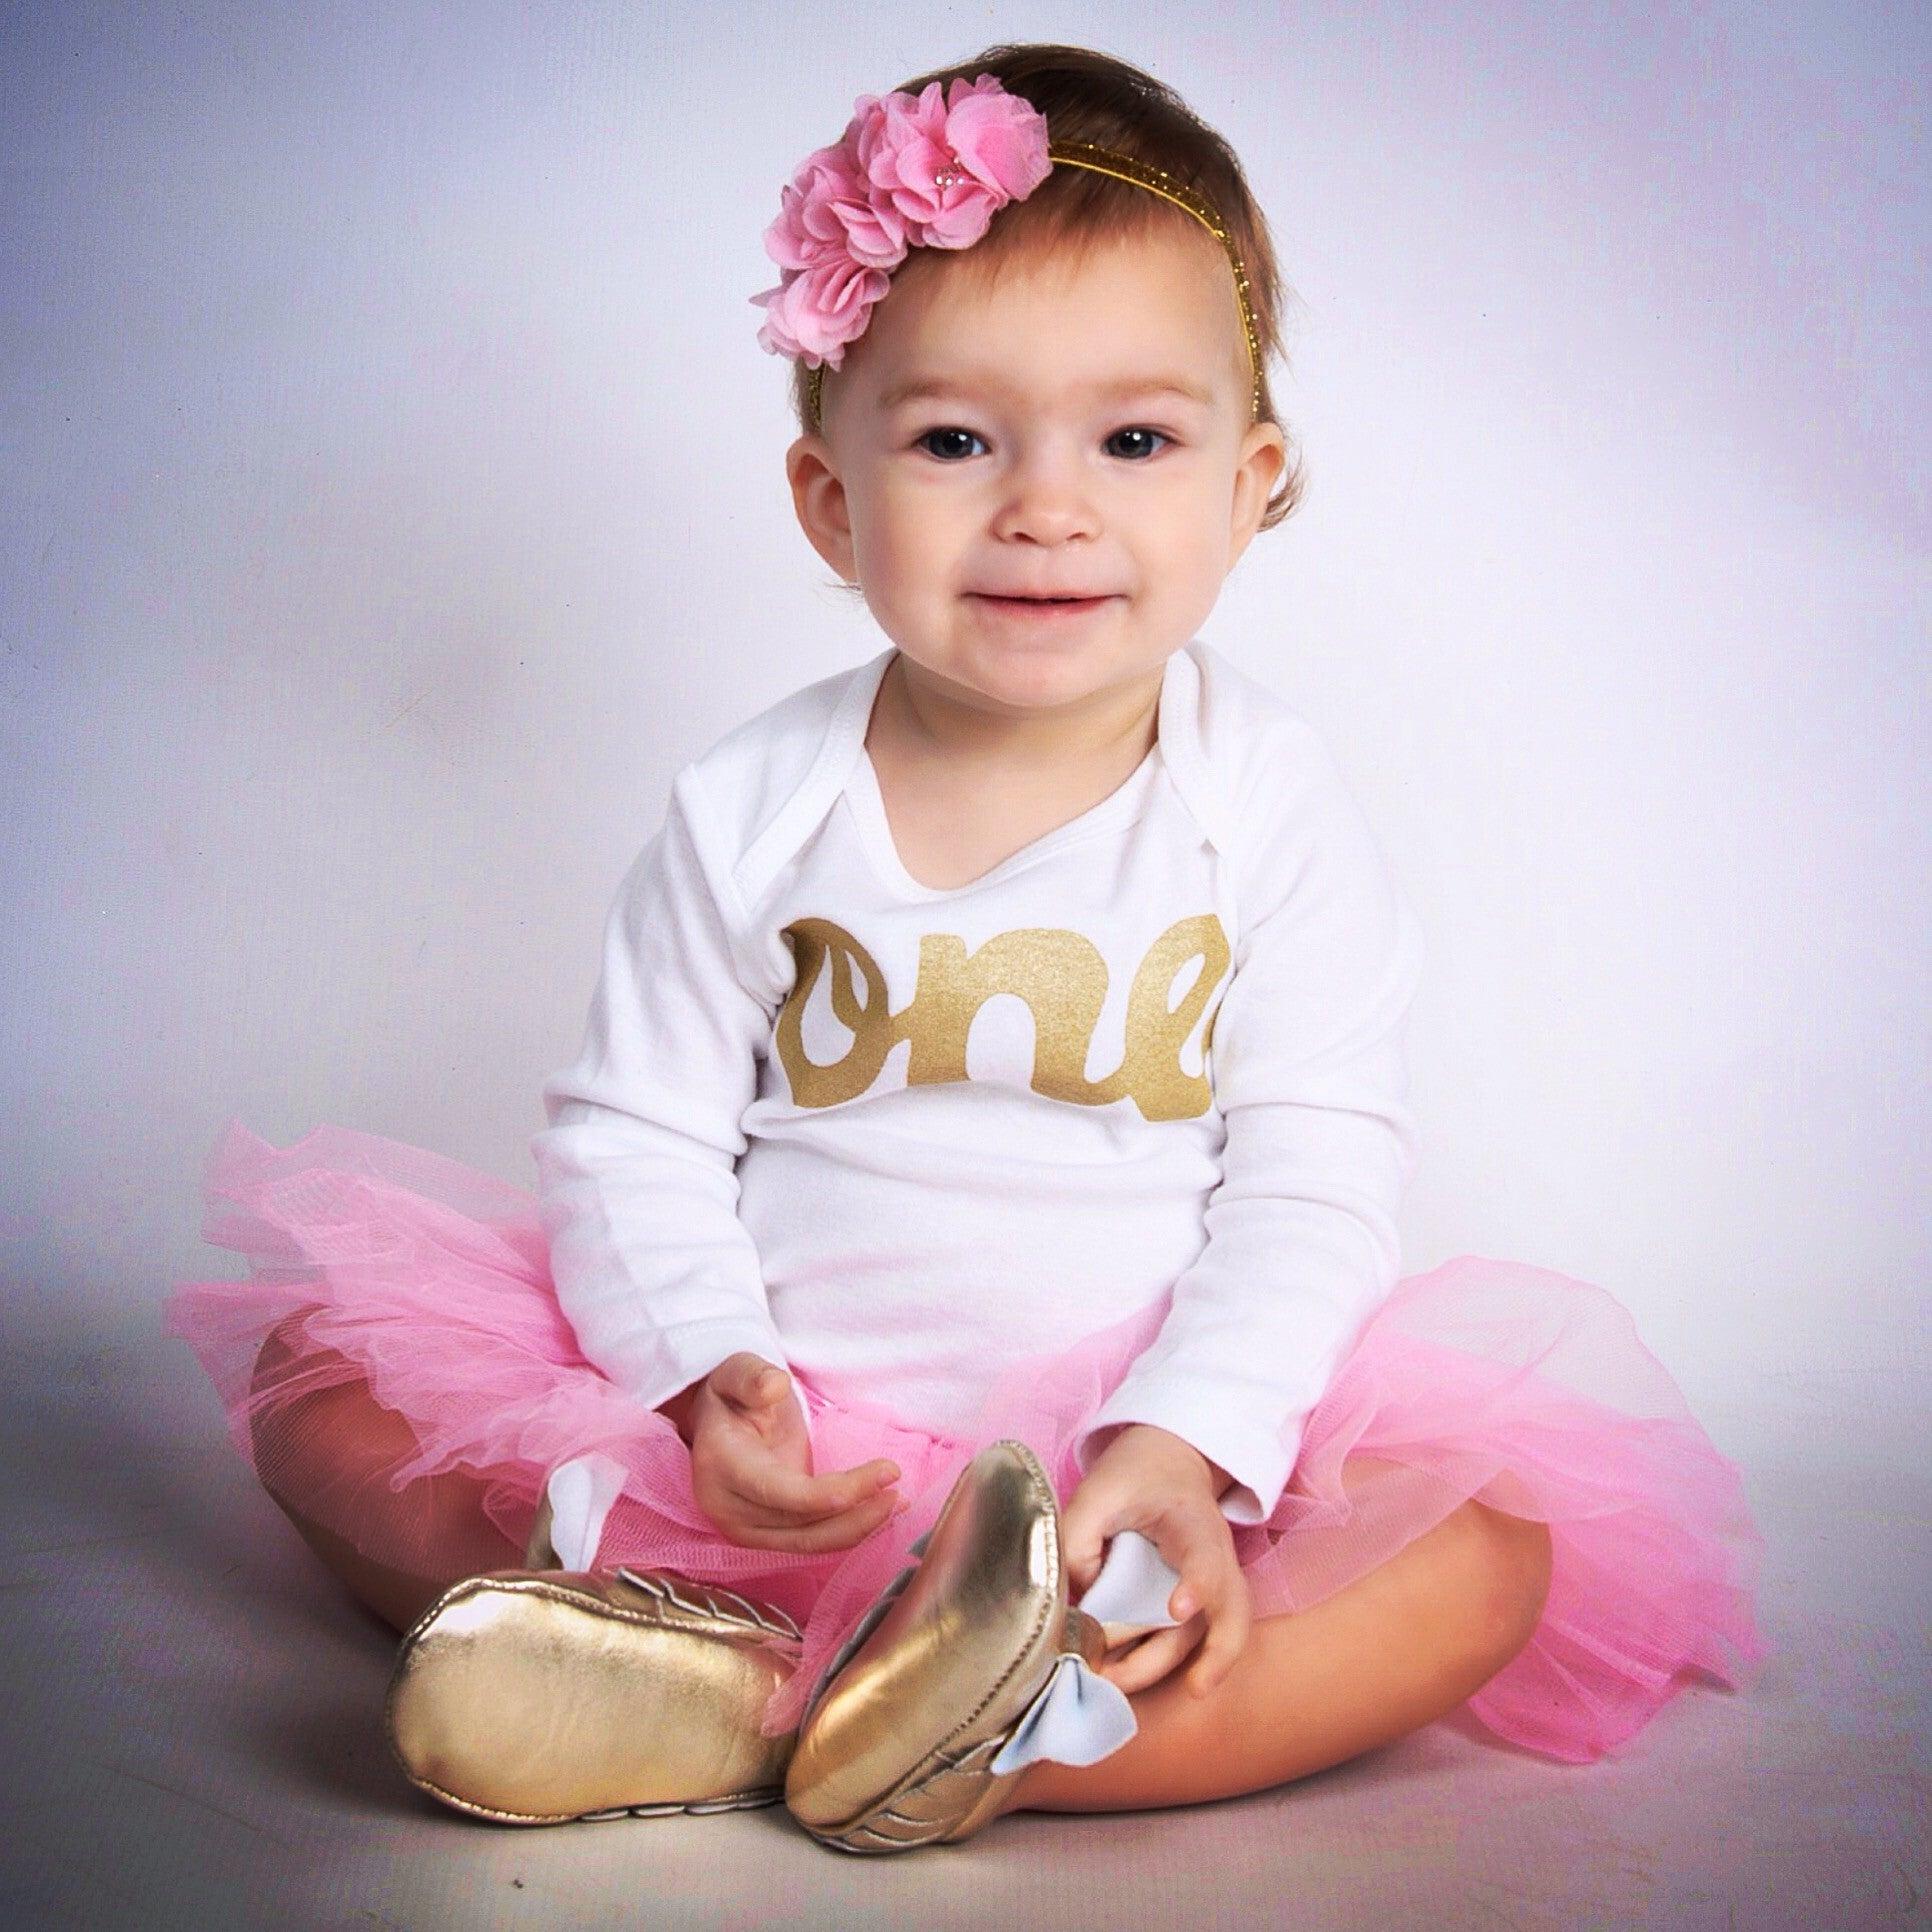 One Year Old Outfit With Baby Moccasin Shoes White Pink Easter Tutu Long Sleeve Gold Glitter Onesie Pettiskirt Girls 1st Birthday Christmas